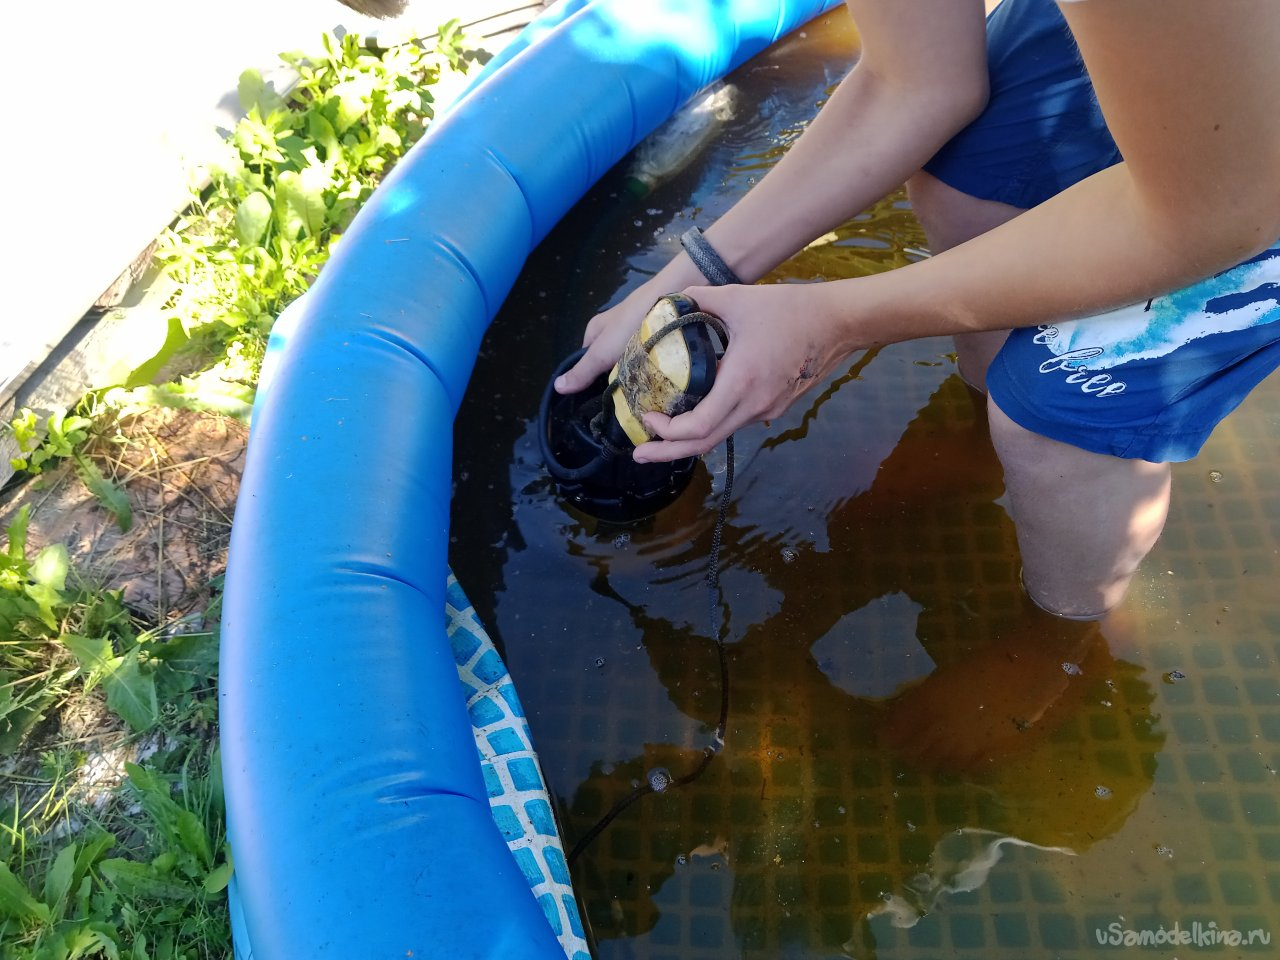 Cleaning the pool with a homemade device and a drainage pump